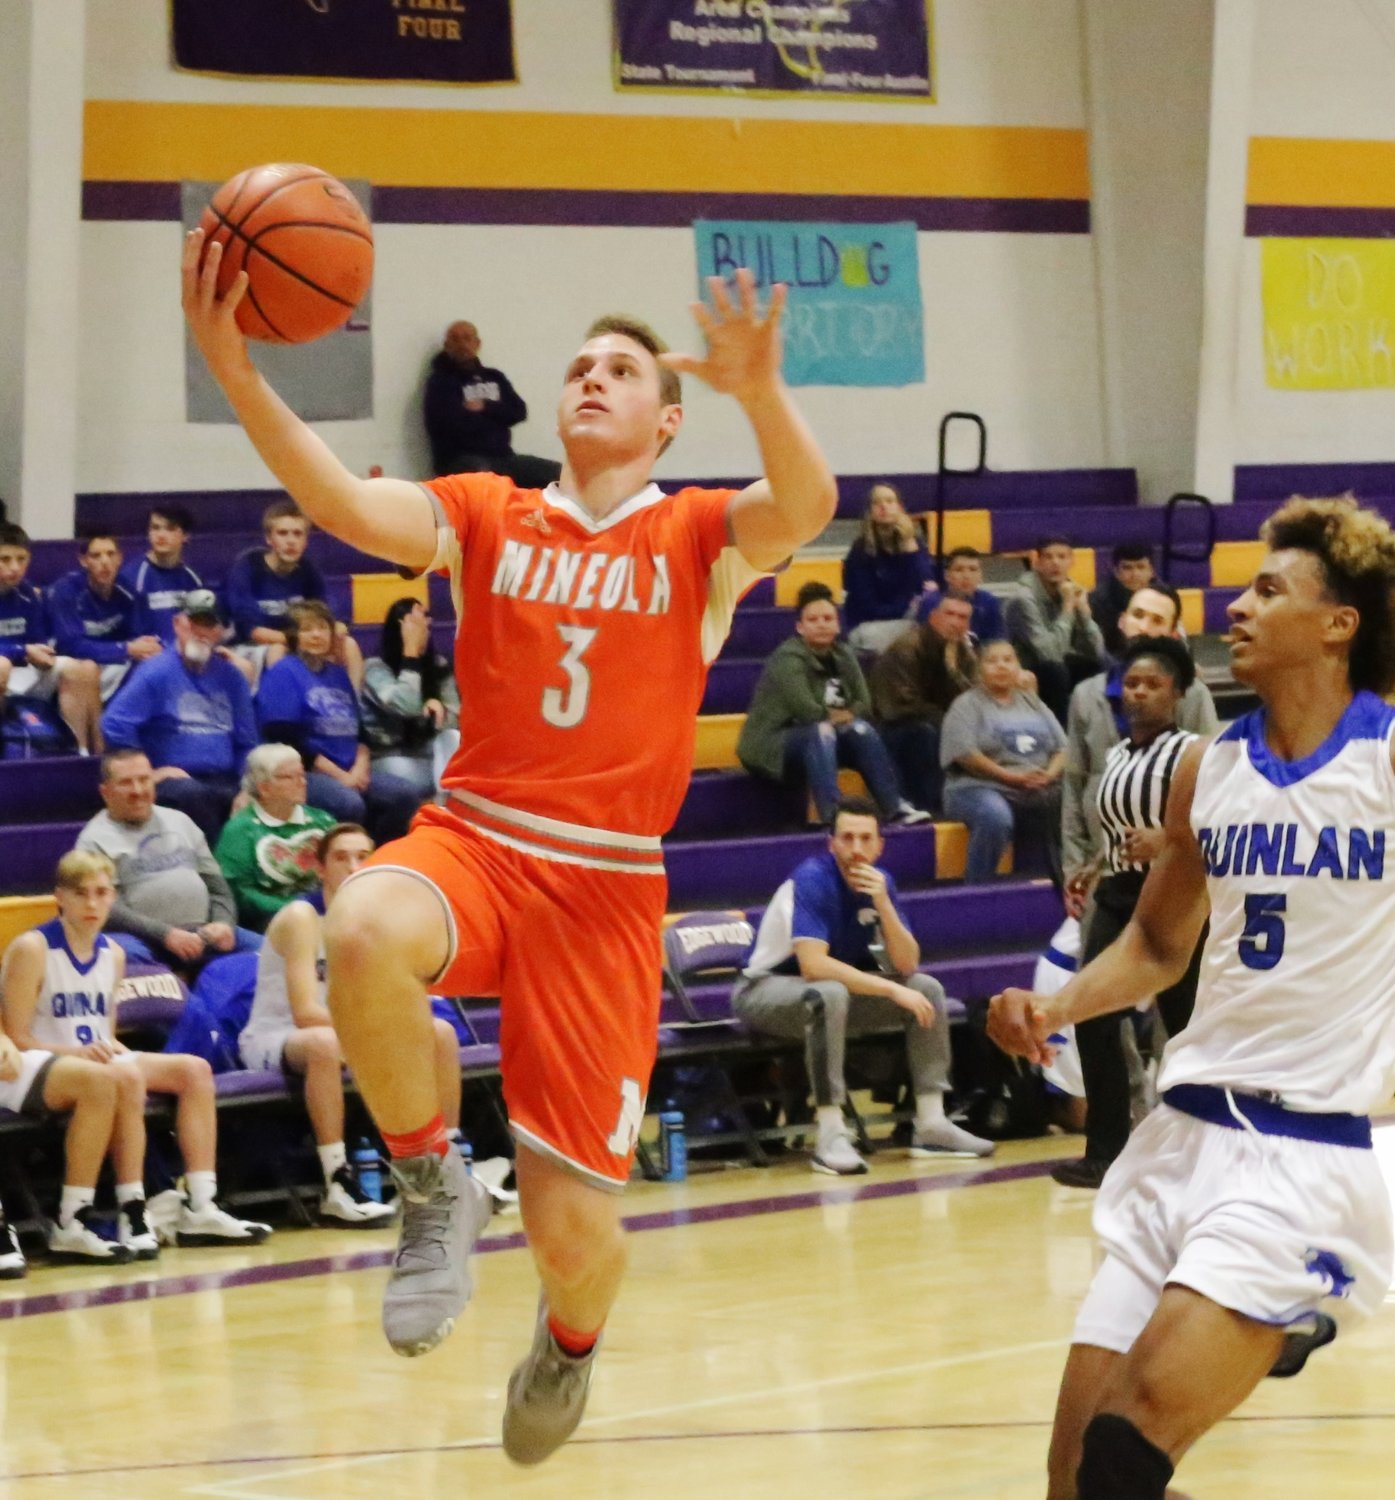 Point guard Jonah Fischer drives to the basket in action against Quinlan-Ford.